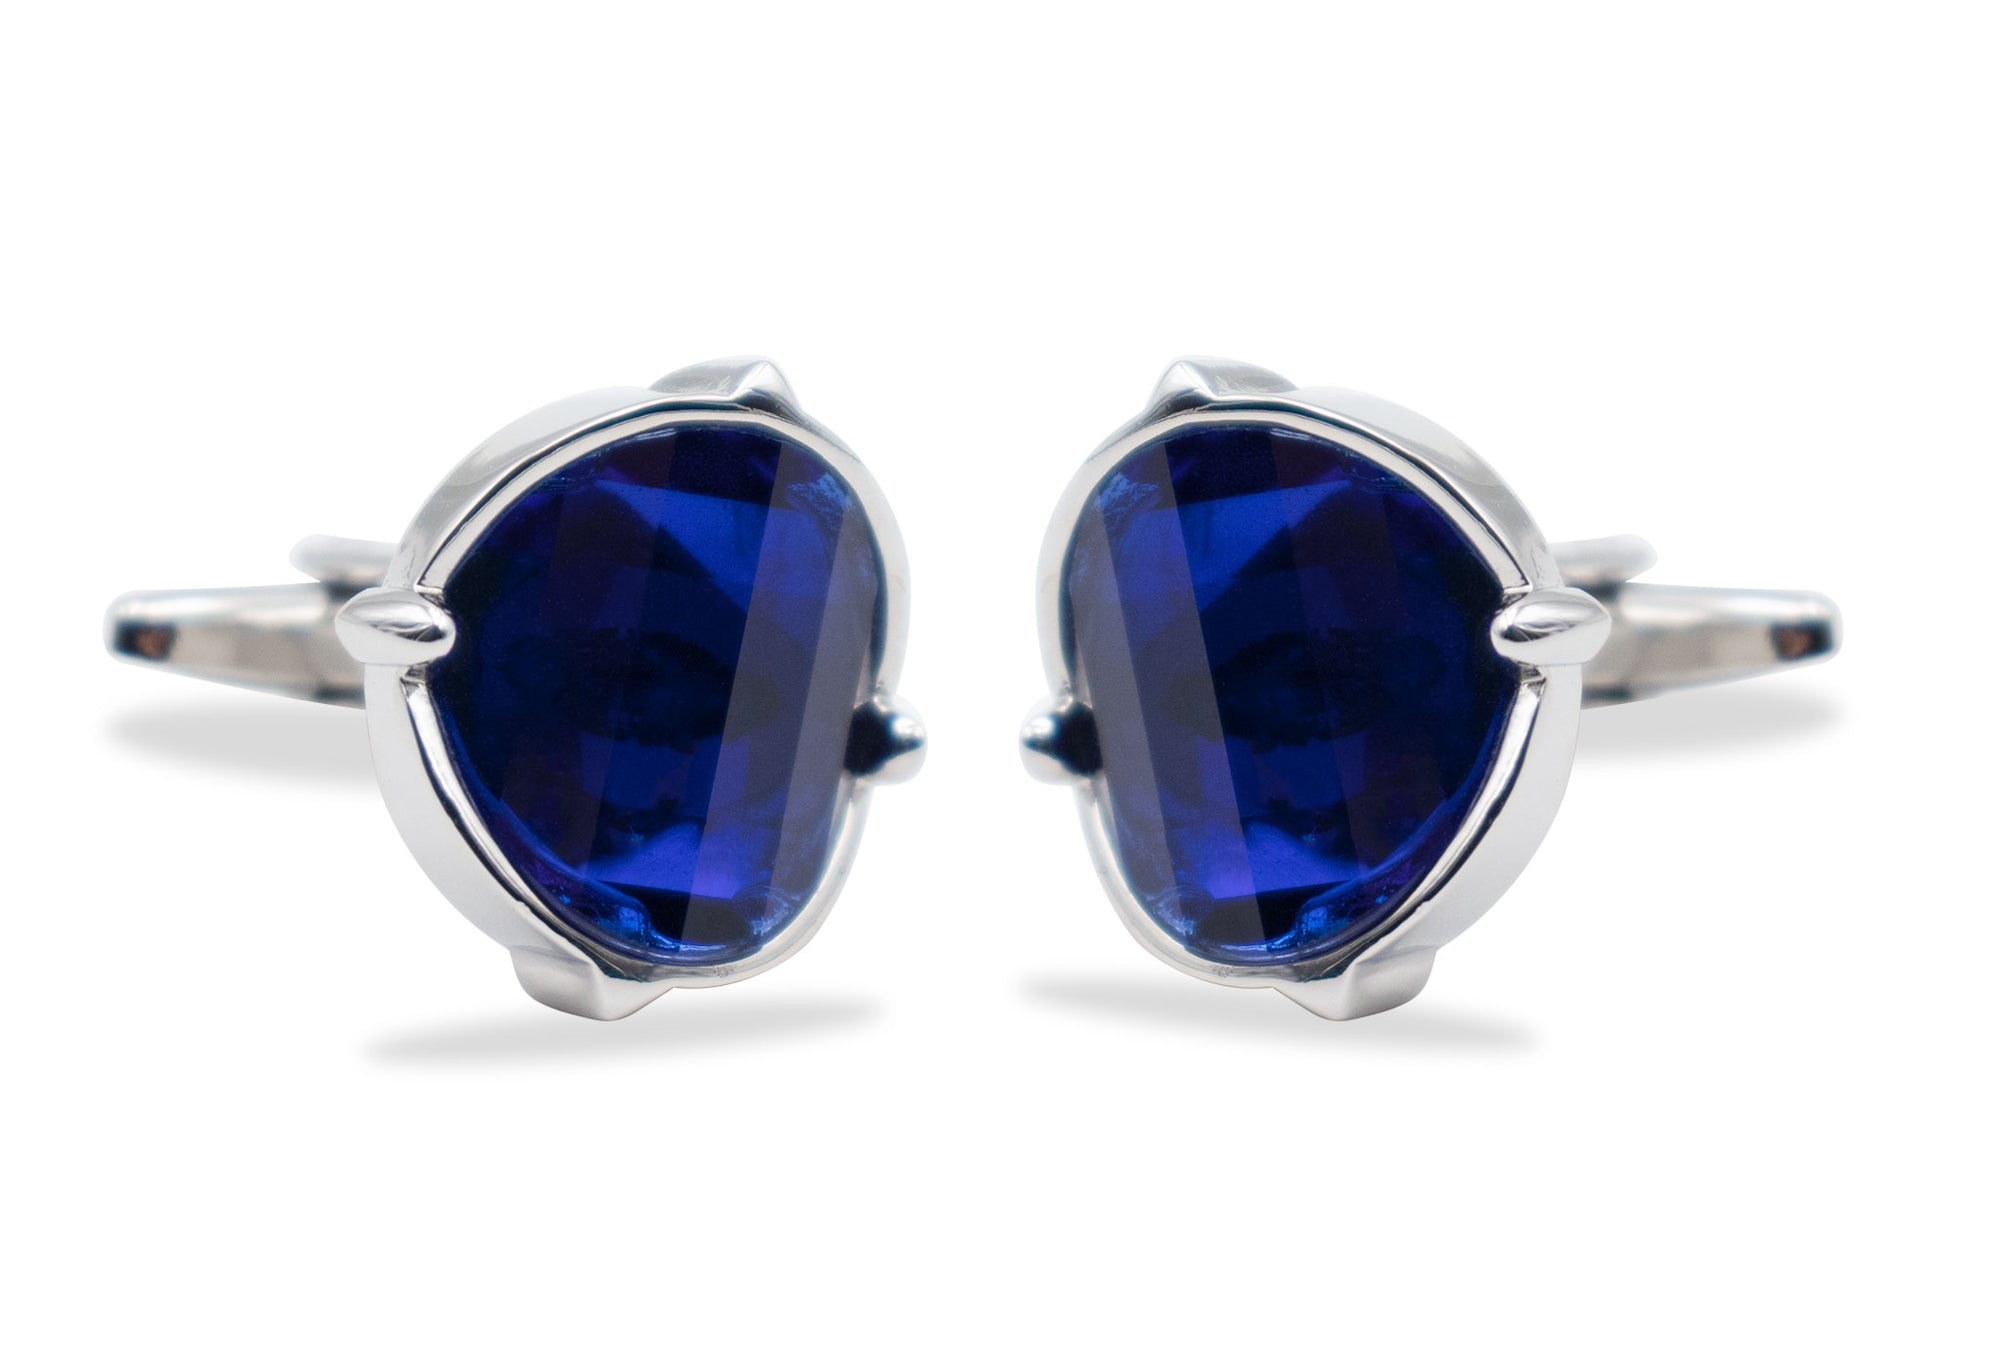 Ejido Blue-Purple Chrome Cufflink